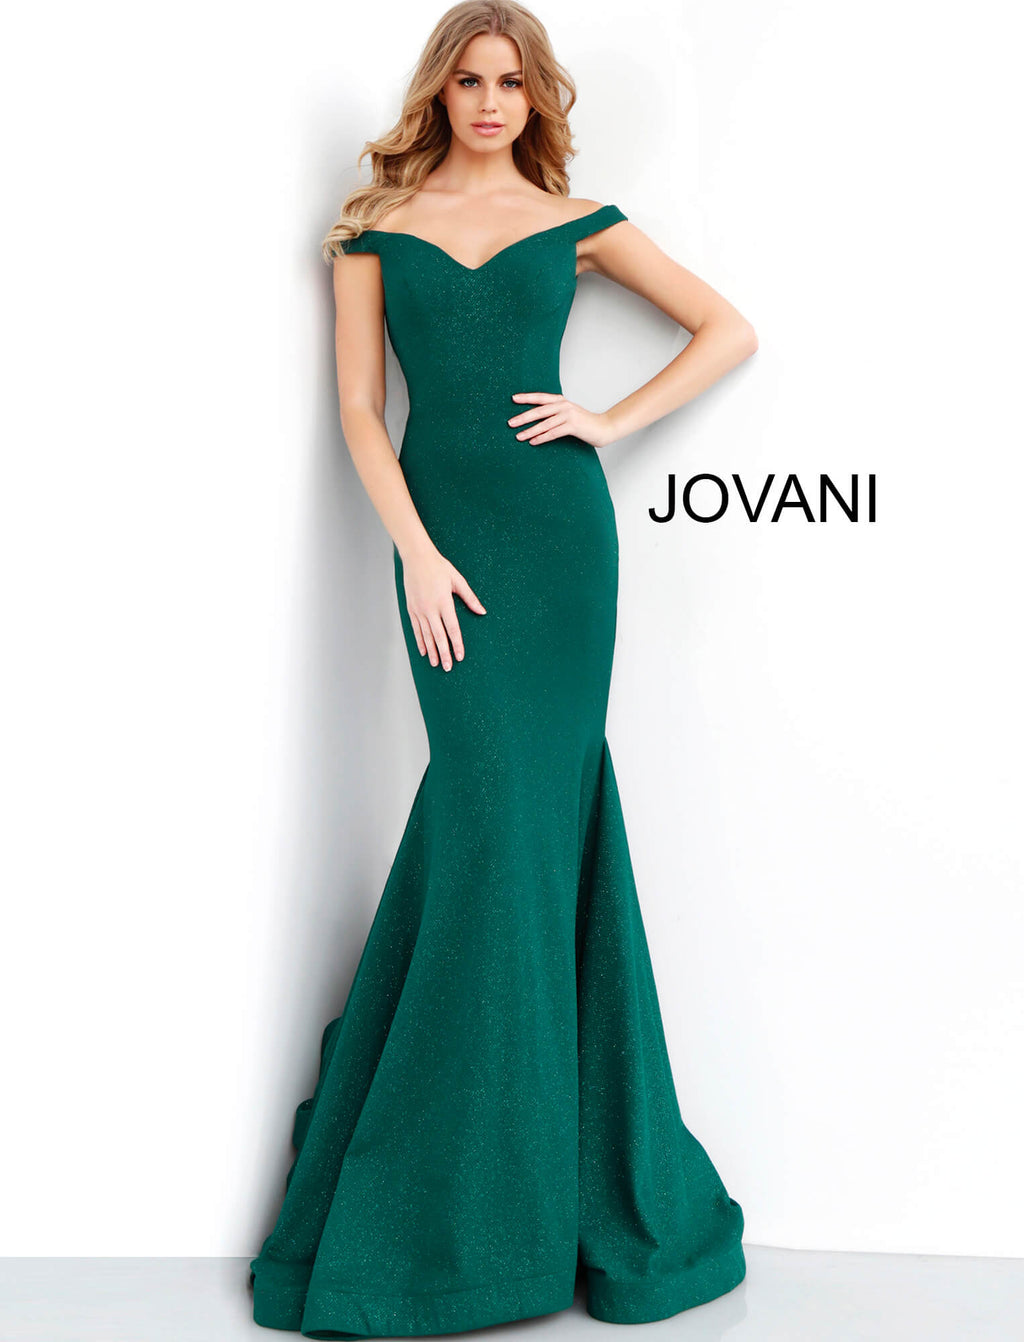 JOVANI 55187 Sweetheart Neckline Mermaid Evening Dress - CYC Boutique